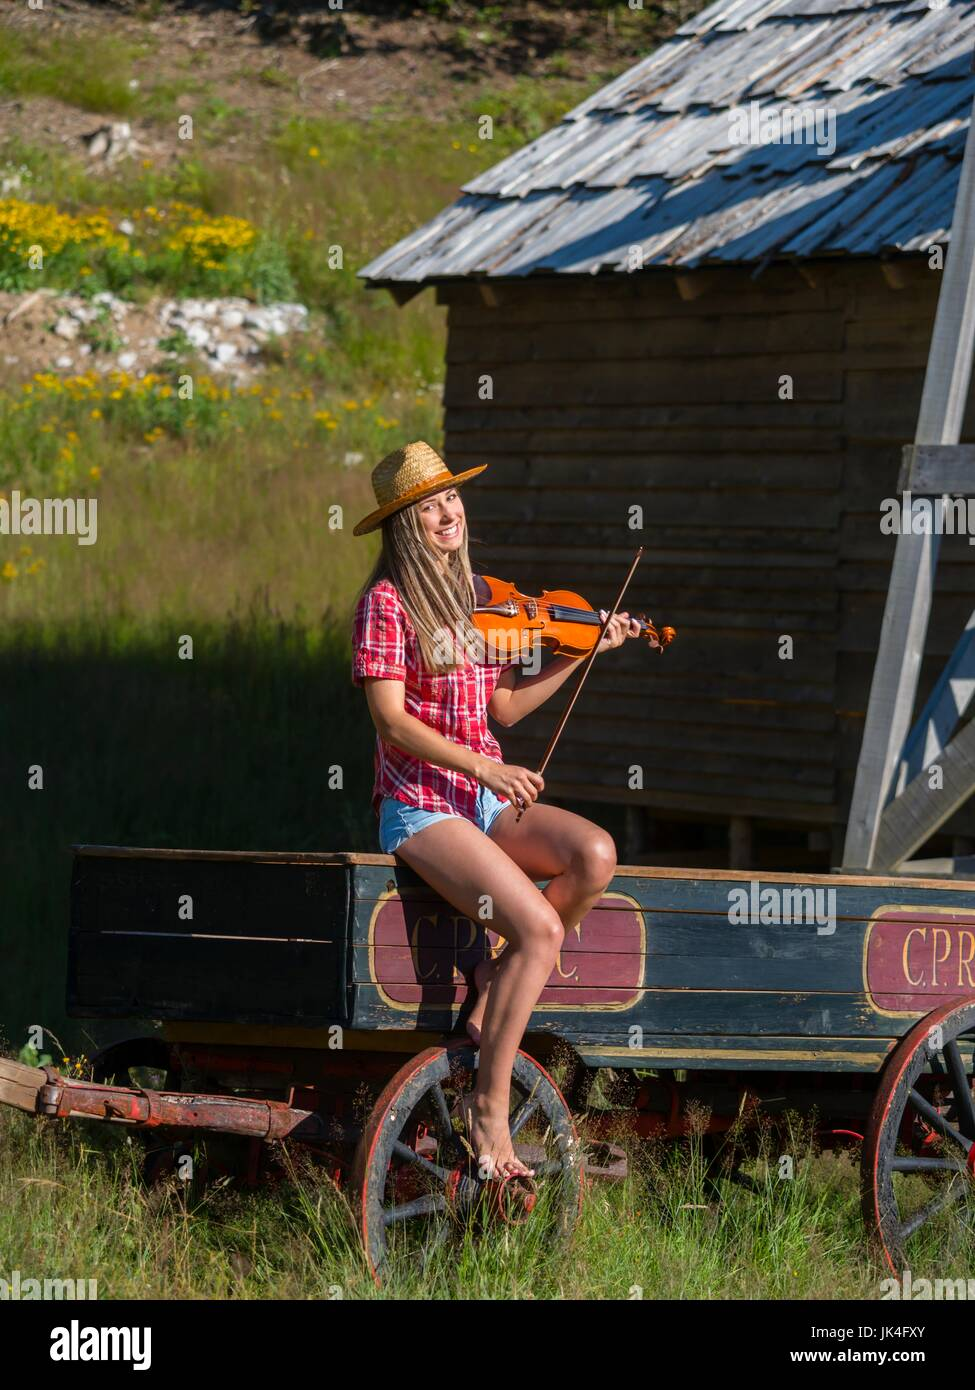 Country-girl musician playing violin sitting atop horse-drawn wagon looking laughing smiling at camera womans apparently - Stock Image